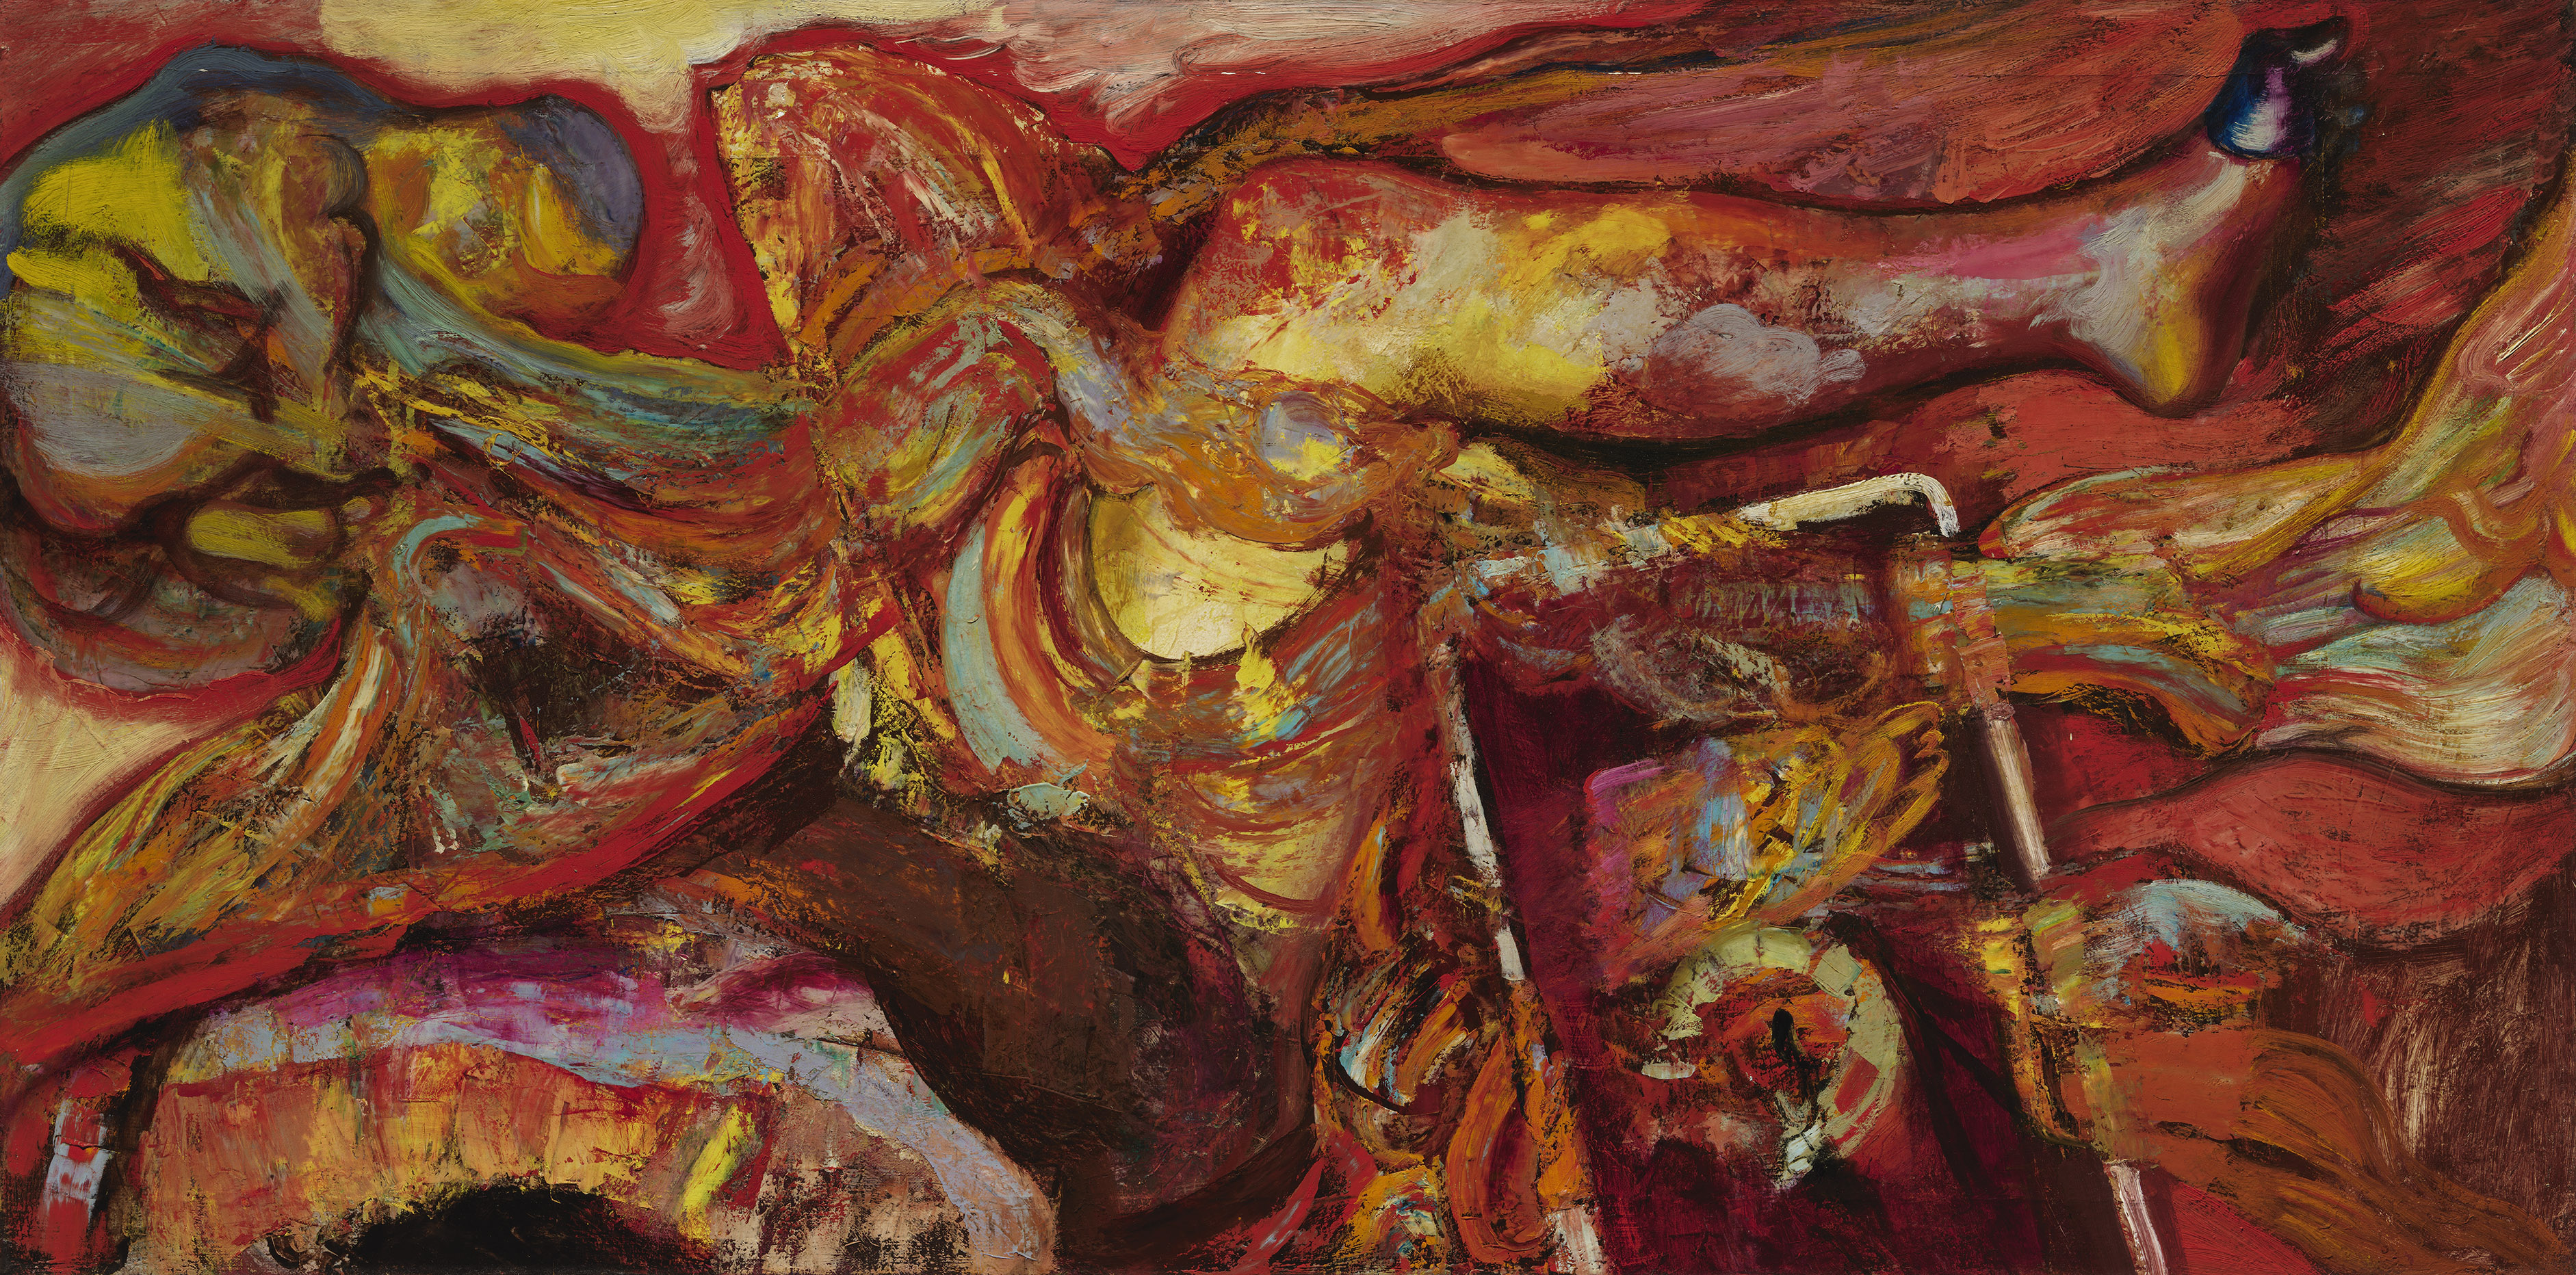 Hyman Bloom Is The Subject Of A Long Awaited Exhbition In Boston The Washington Post